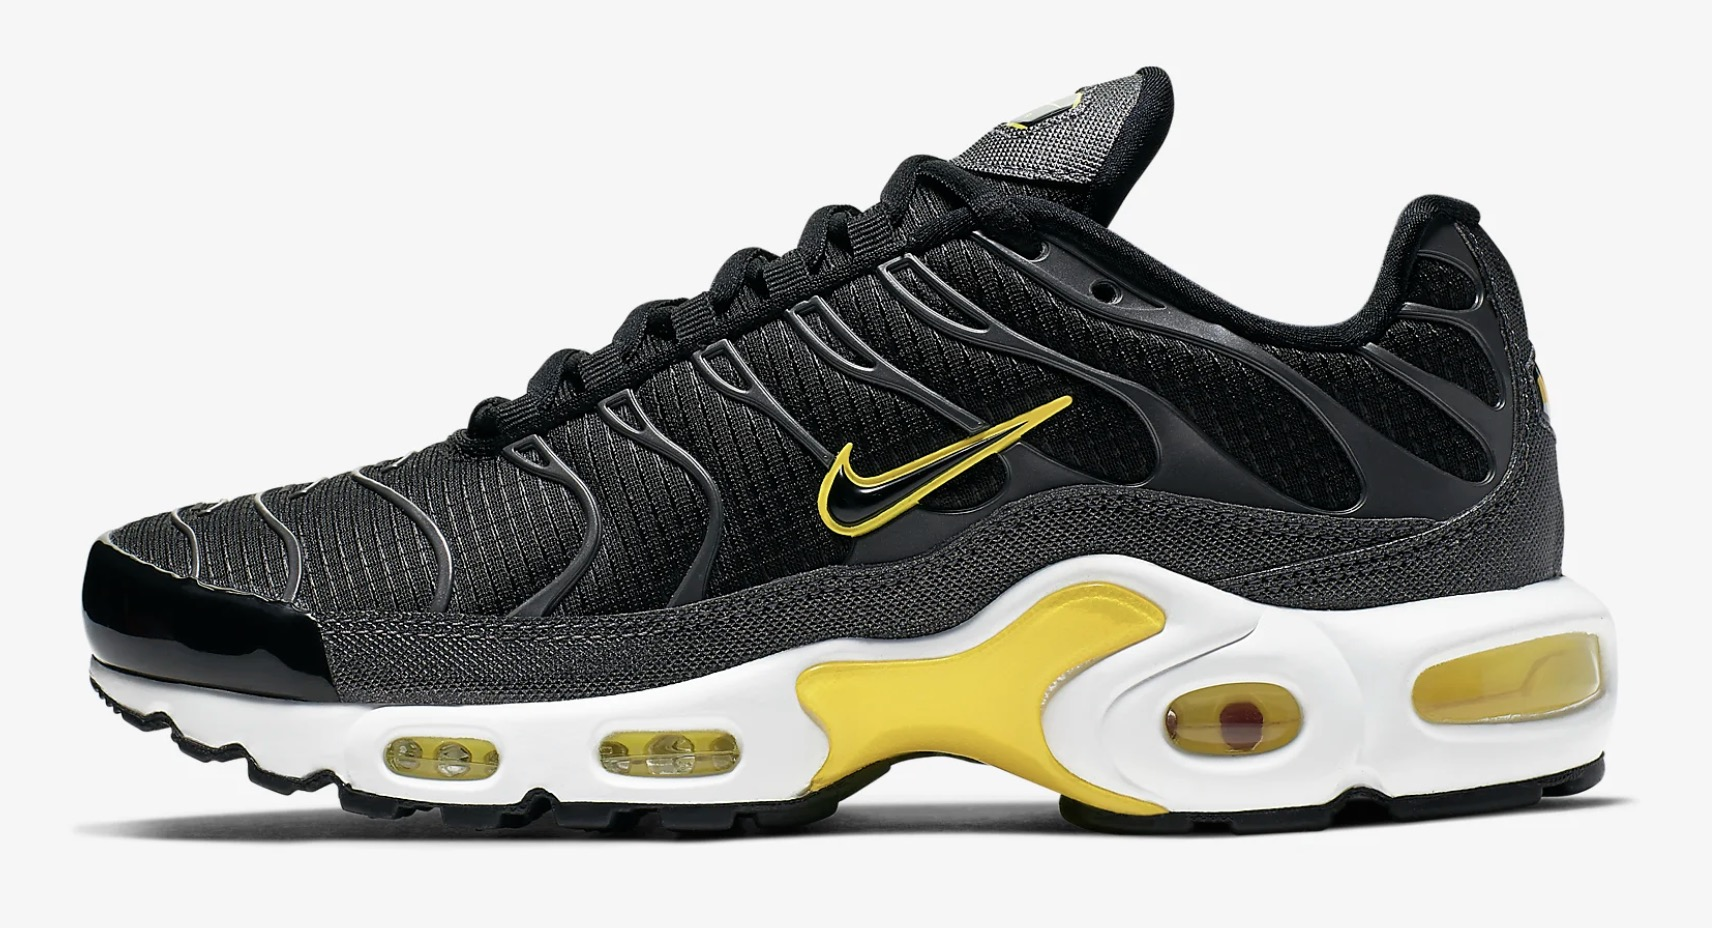 official fantastic savings cheap for discount The Nike Air Max Plus Gets A Bumblebee Look In Black & Dynamic ...